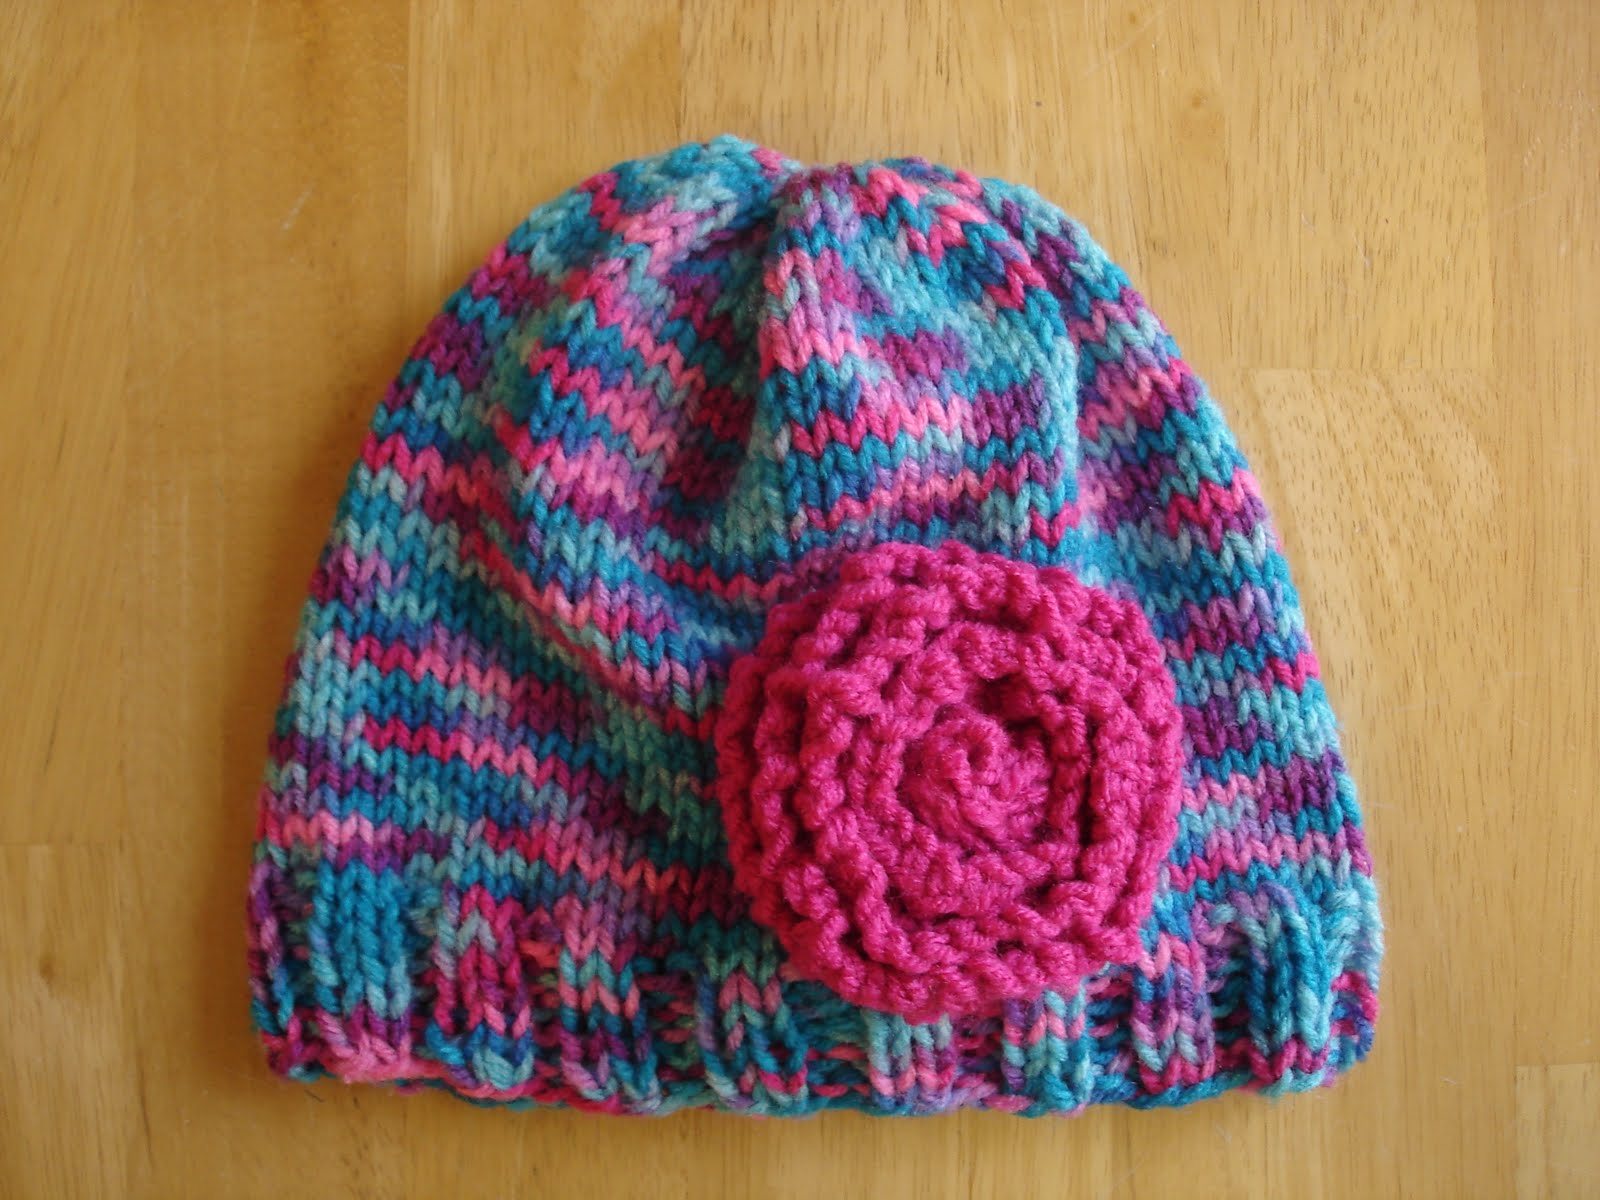 Traditional Fair Isle Knitting Patterns : Fiber Flux: Free Knitting Pattern! Cotton Candy Hat